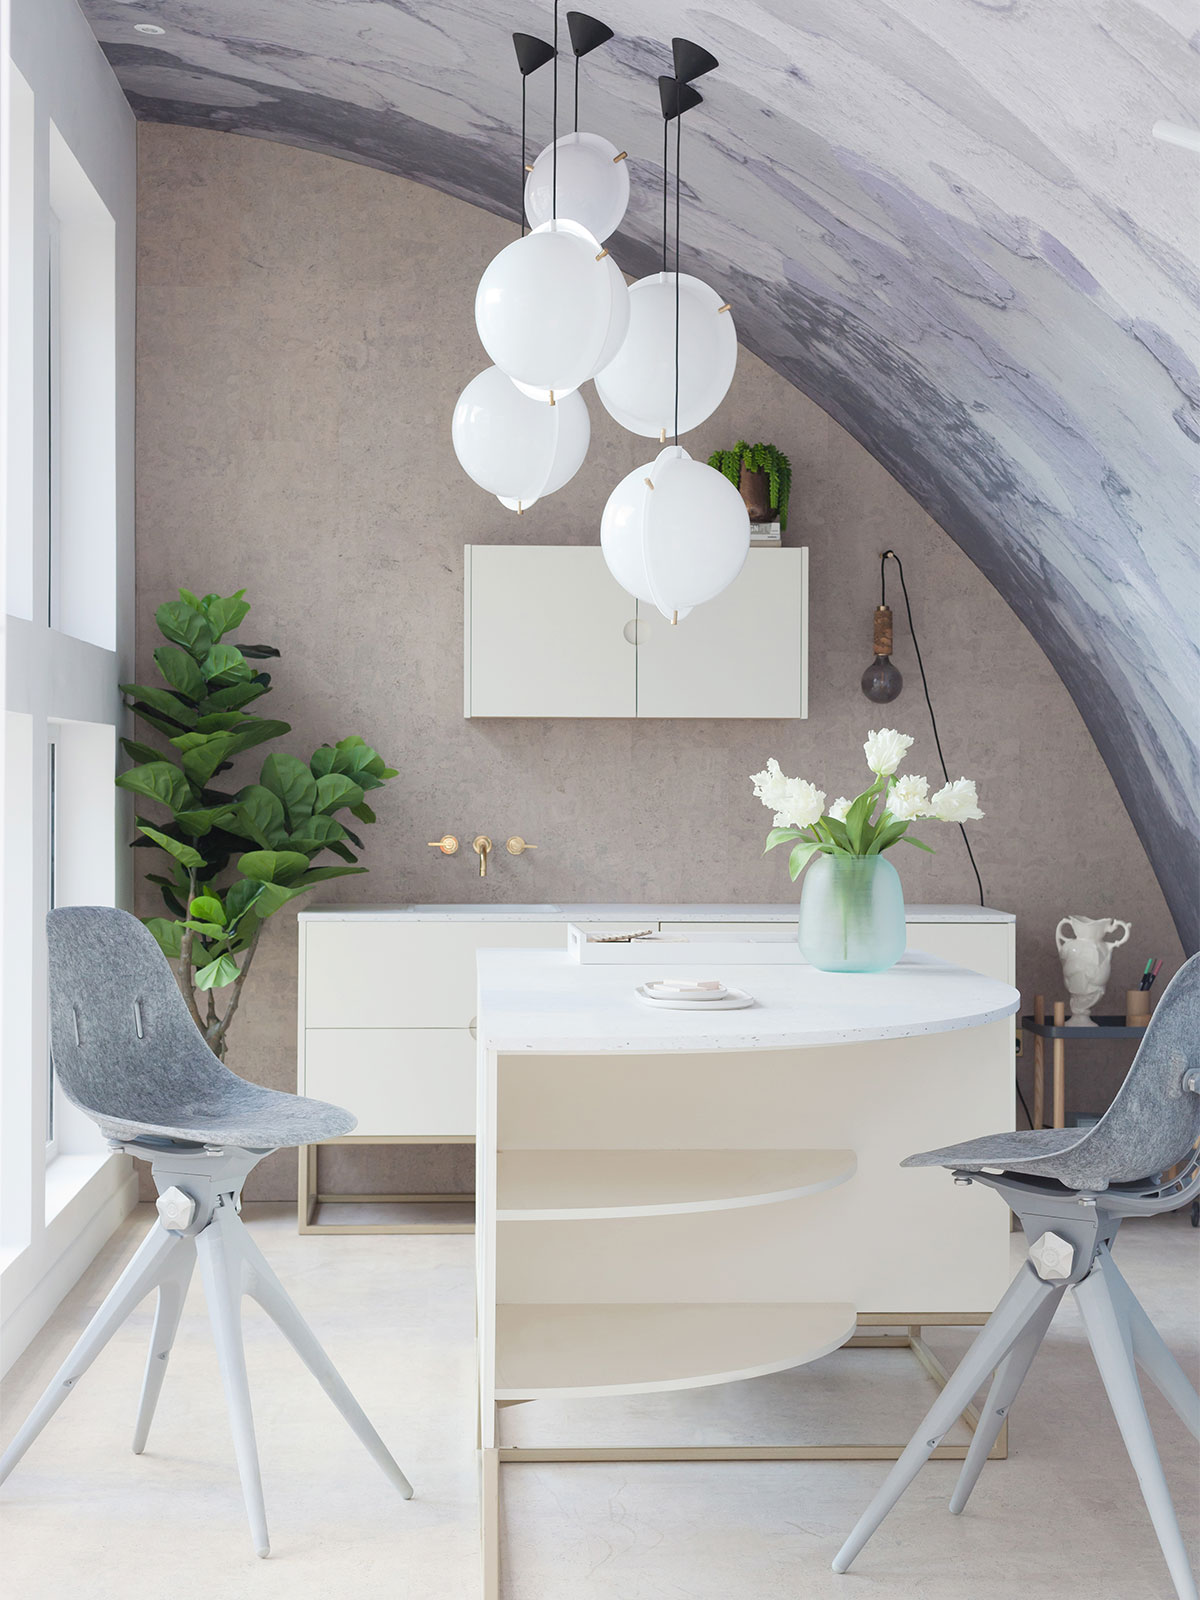 2LG Studio » The Lovely Pod – How to create a \'Love/Work\' space